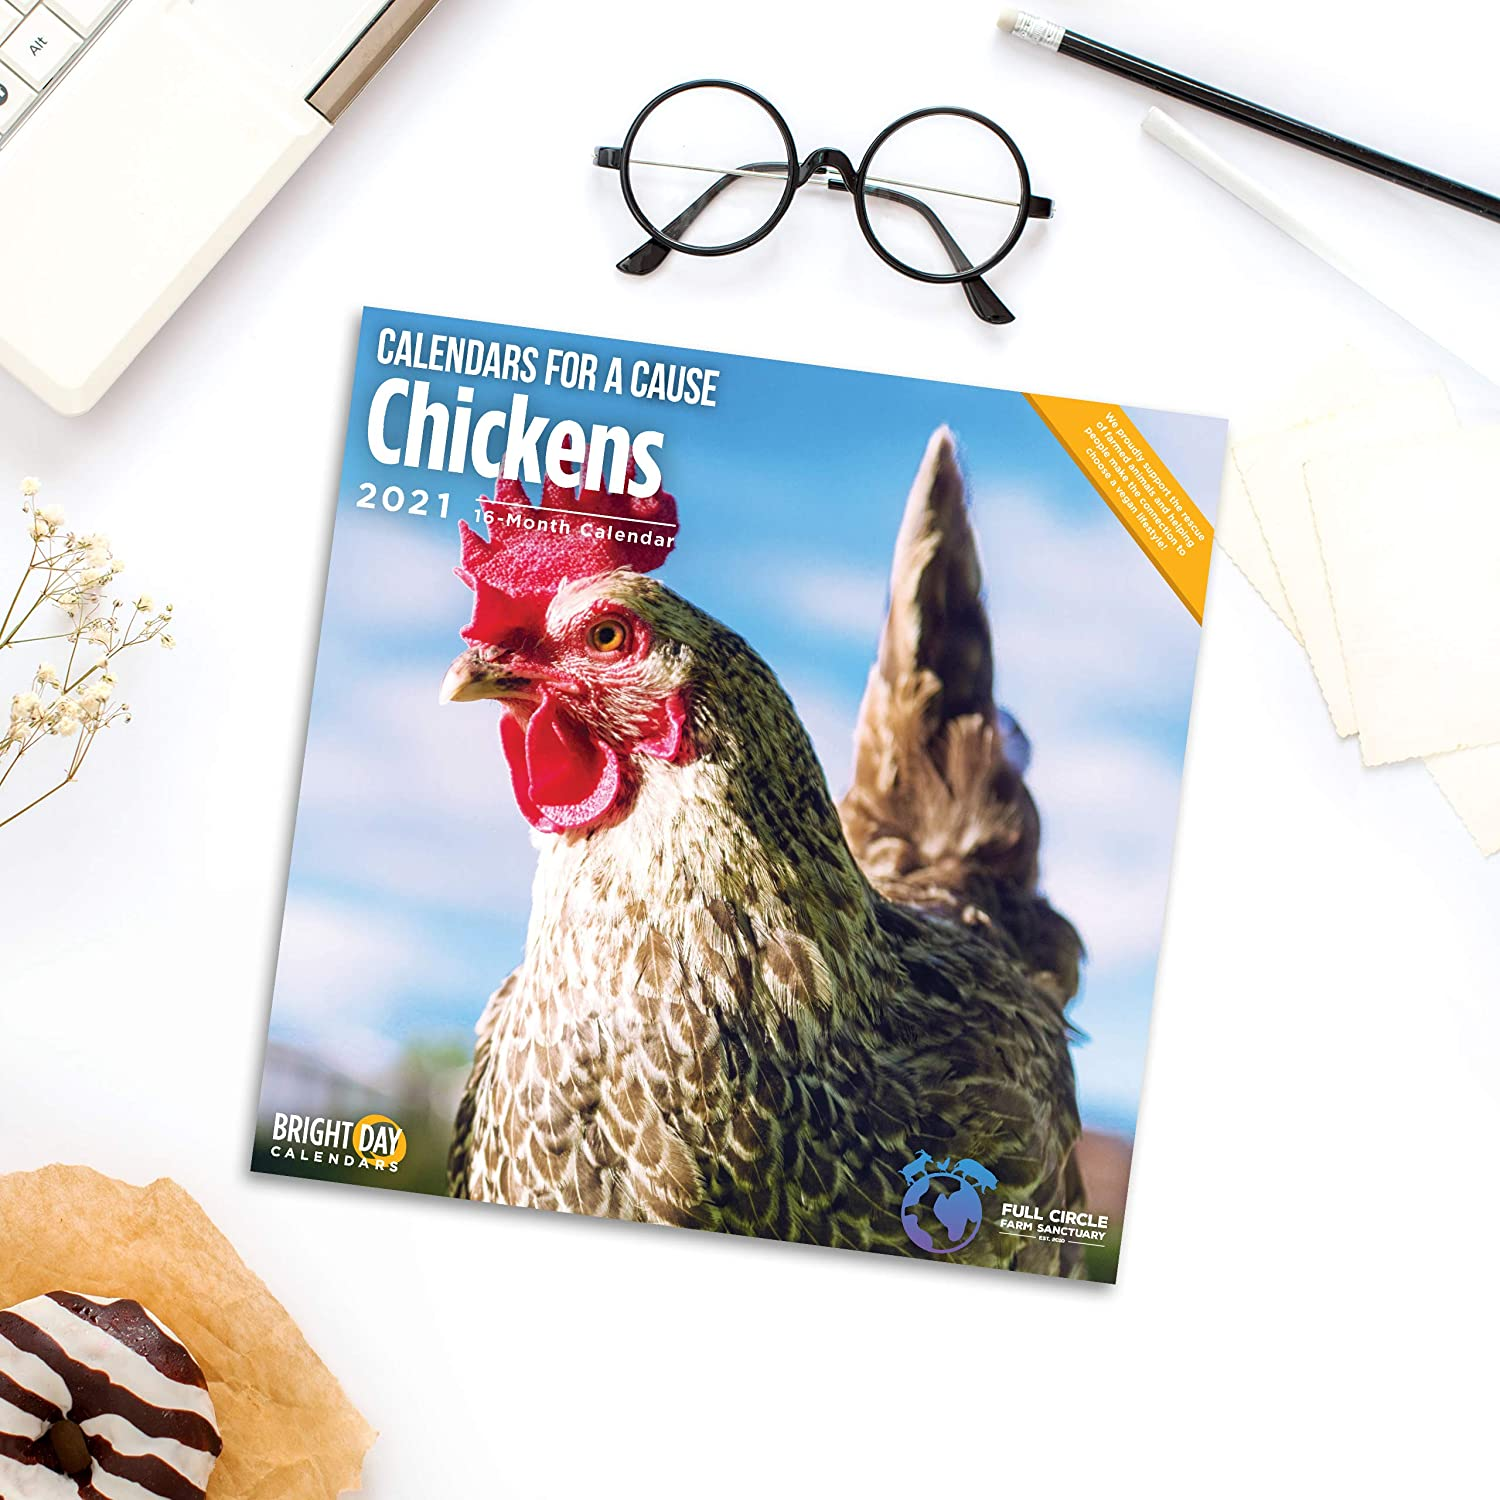 2021 Chickens Wall Calendar by Bright Day, 12 x 12 Inch, Farm Animals Calendars for Cause Collection